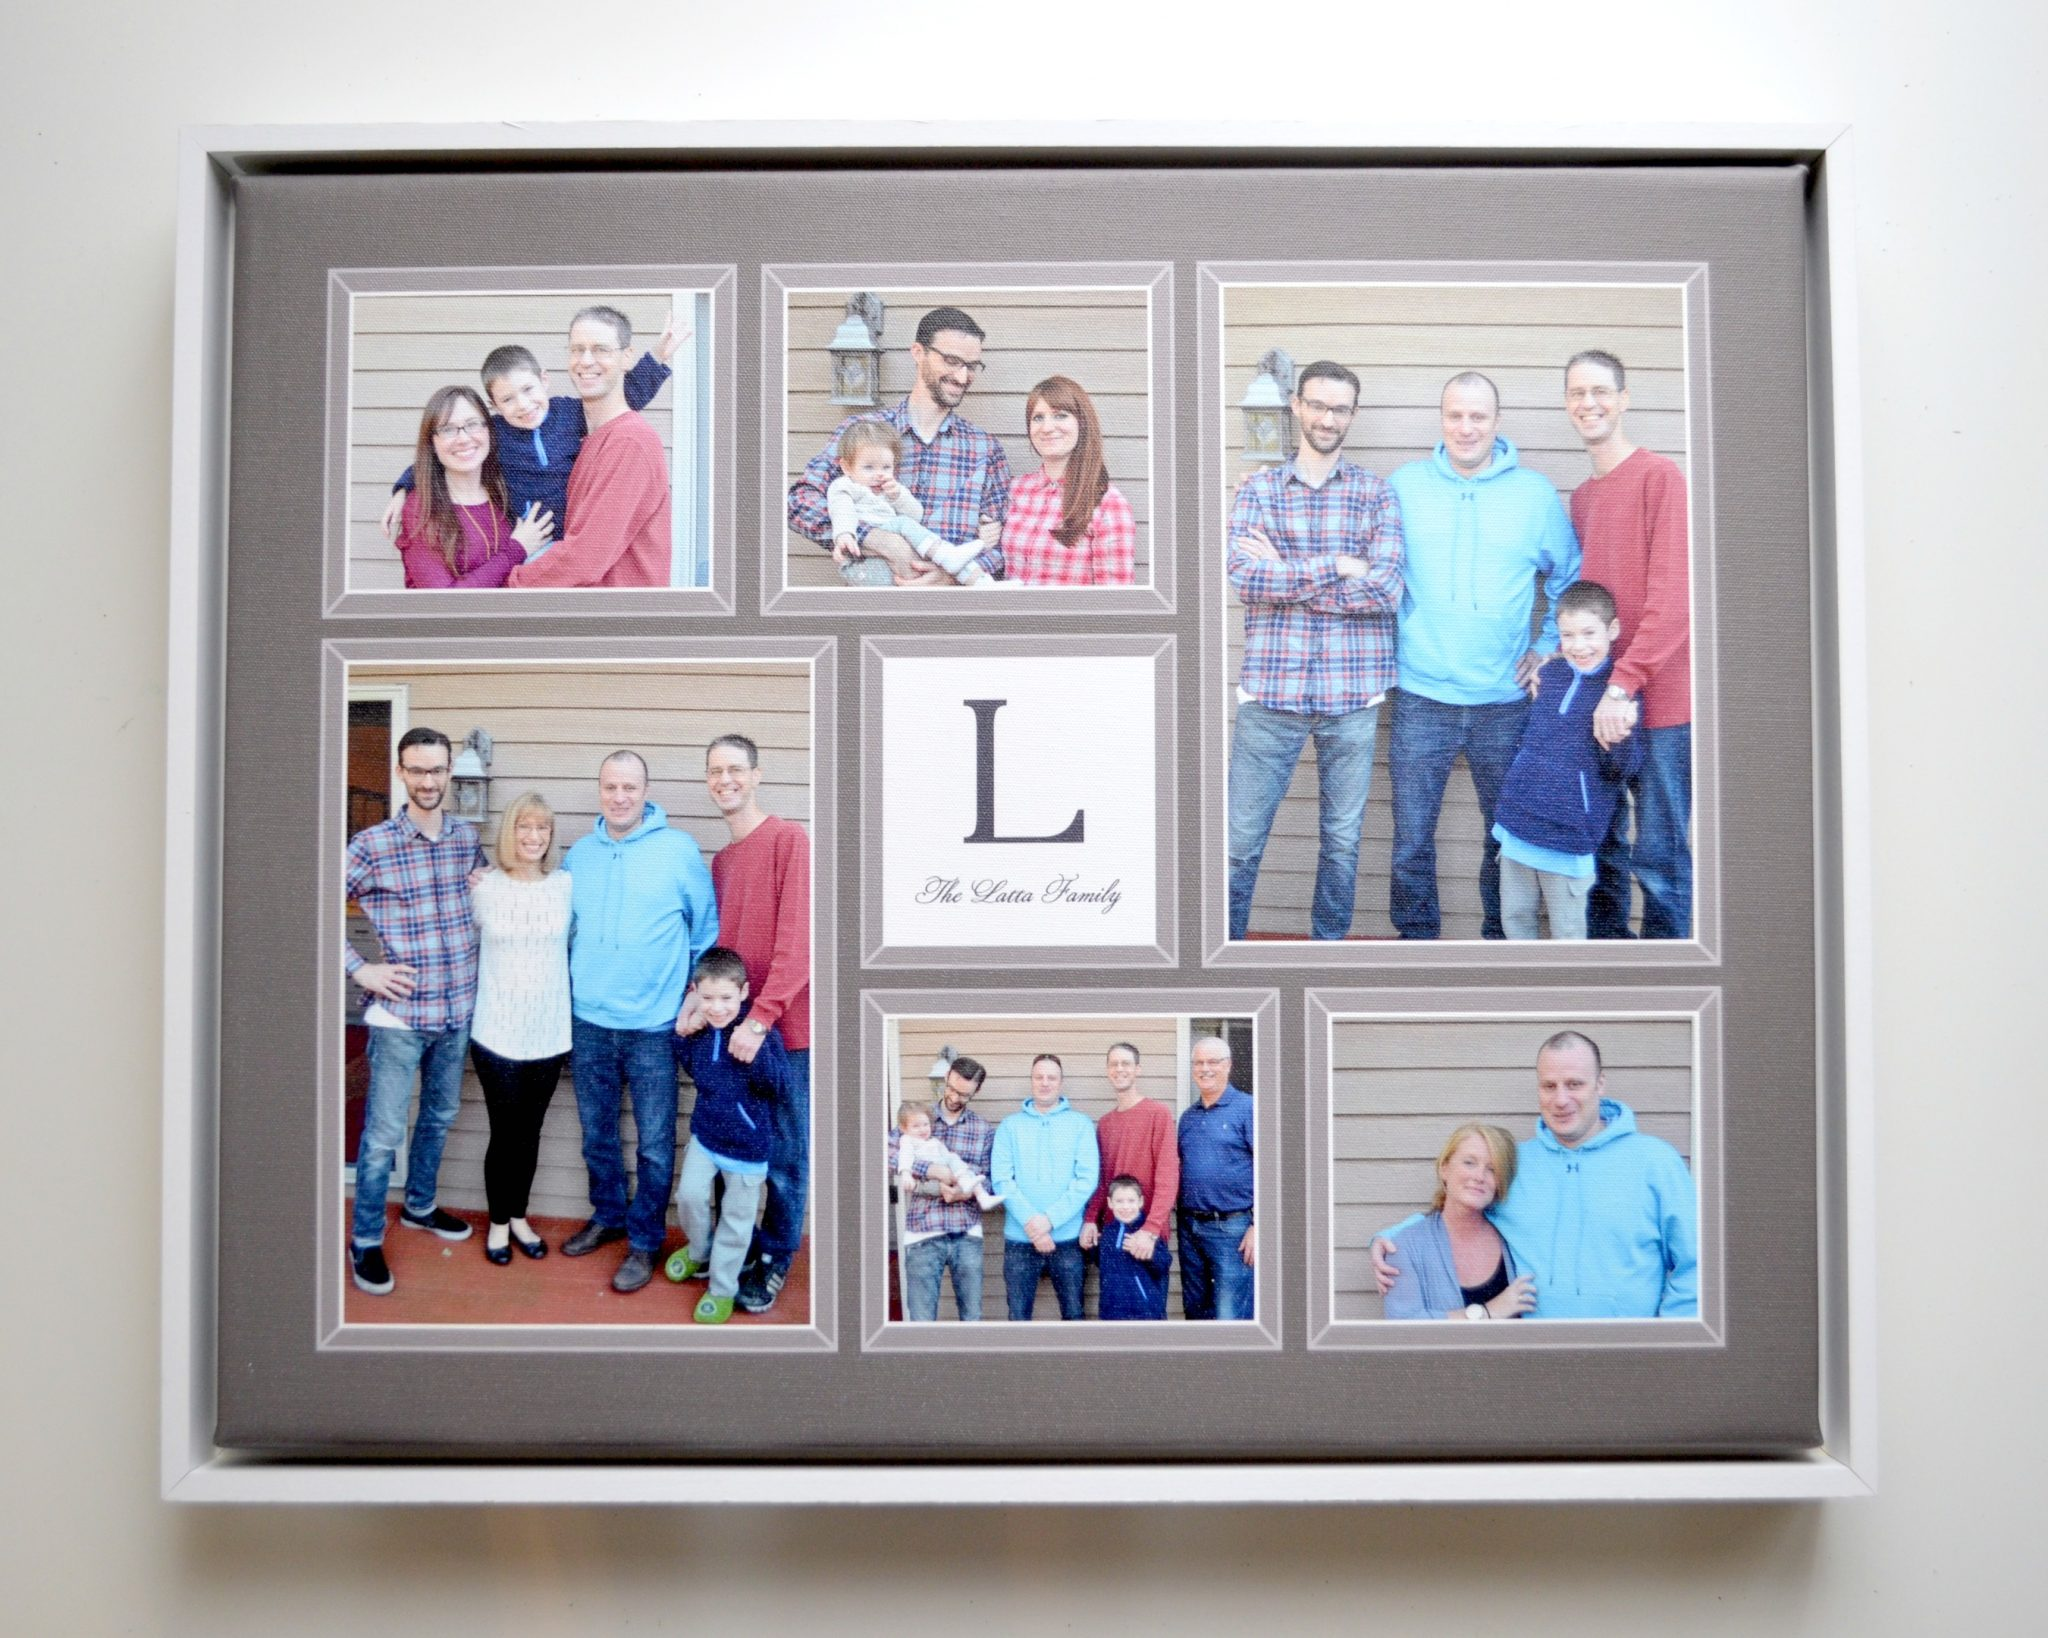 Canvas Prints from Shutterfly